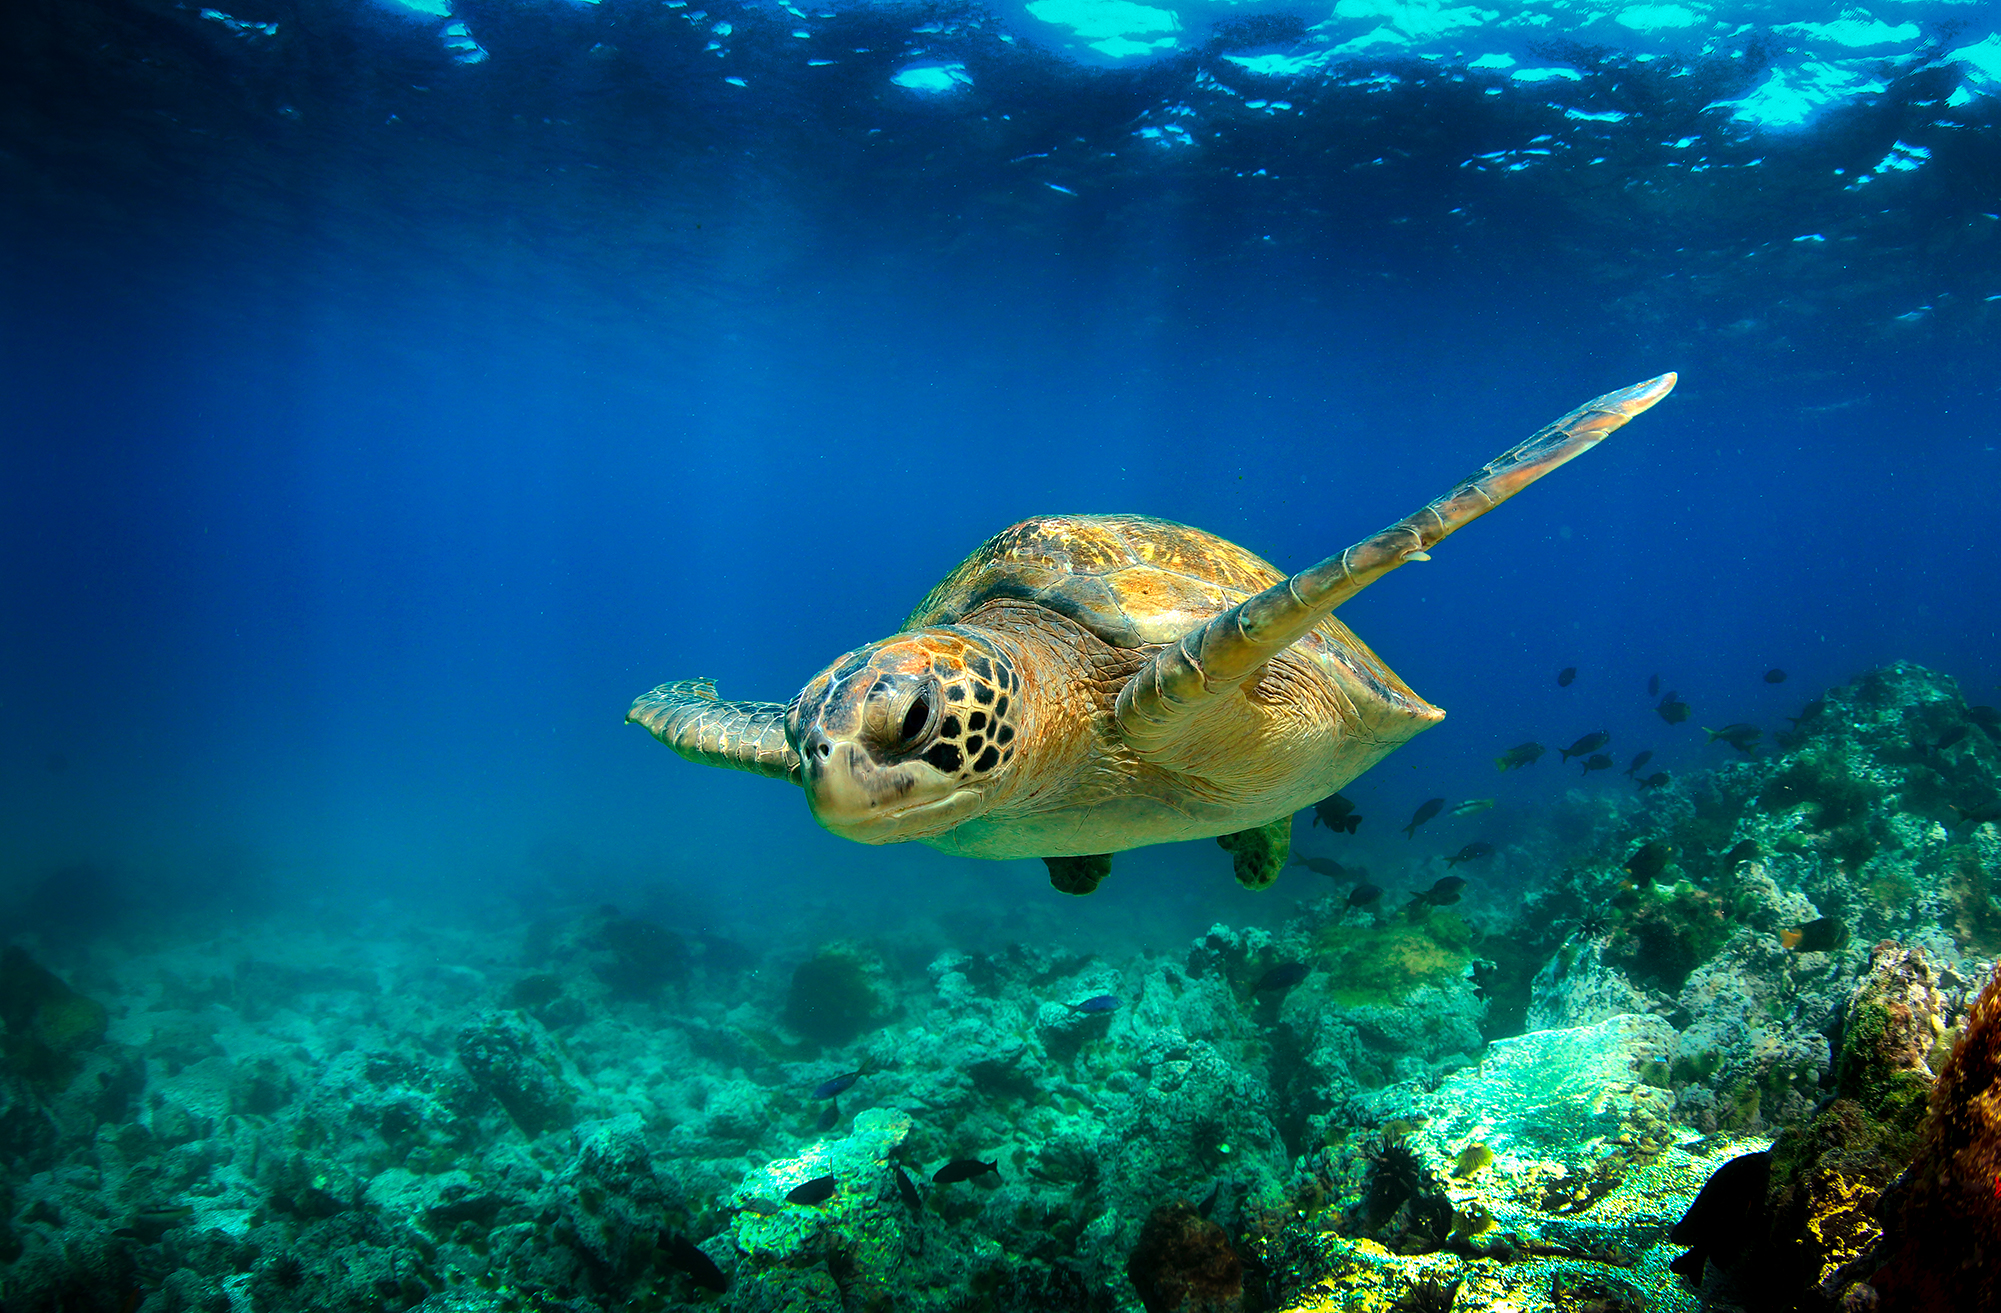 Turtle Swimming - Ocean - Sea Turtle